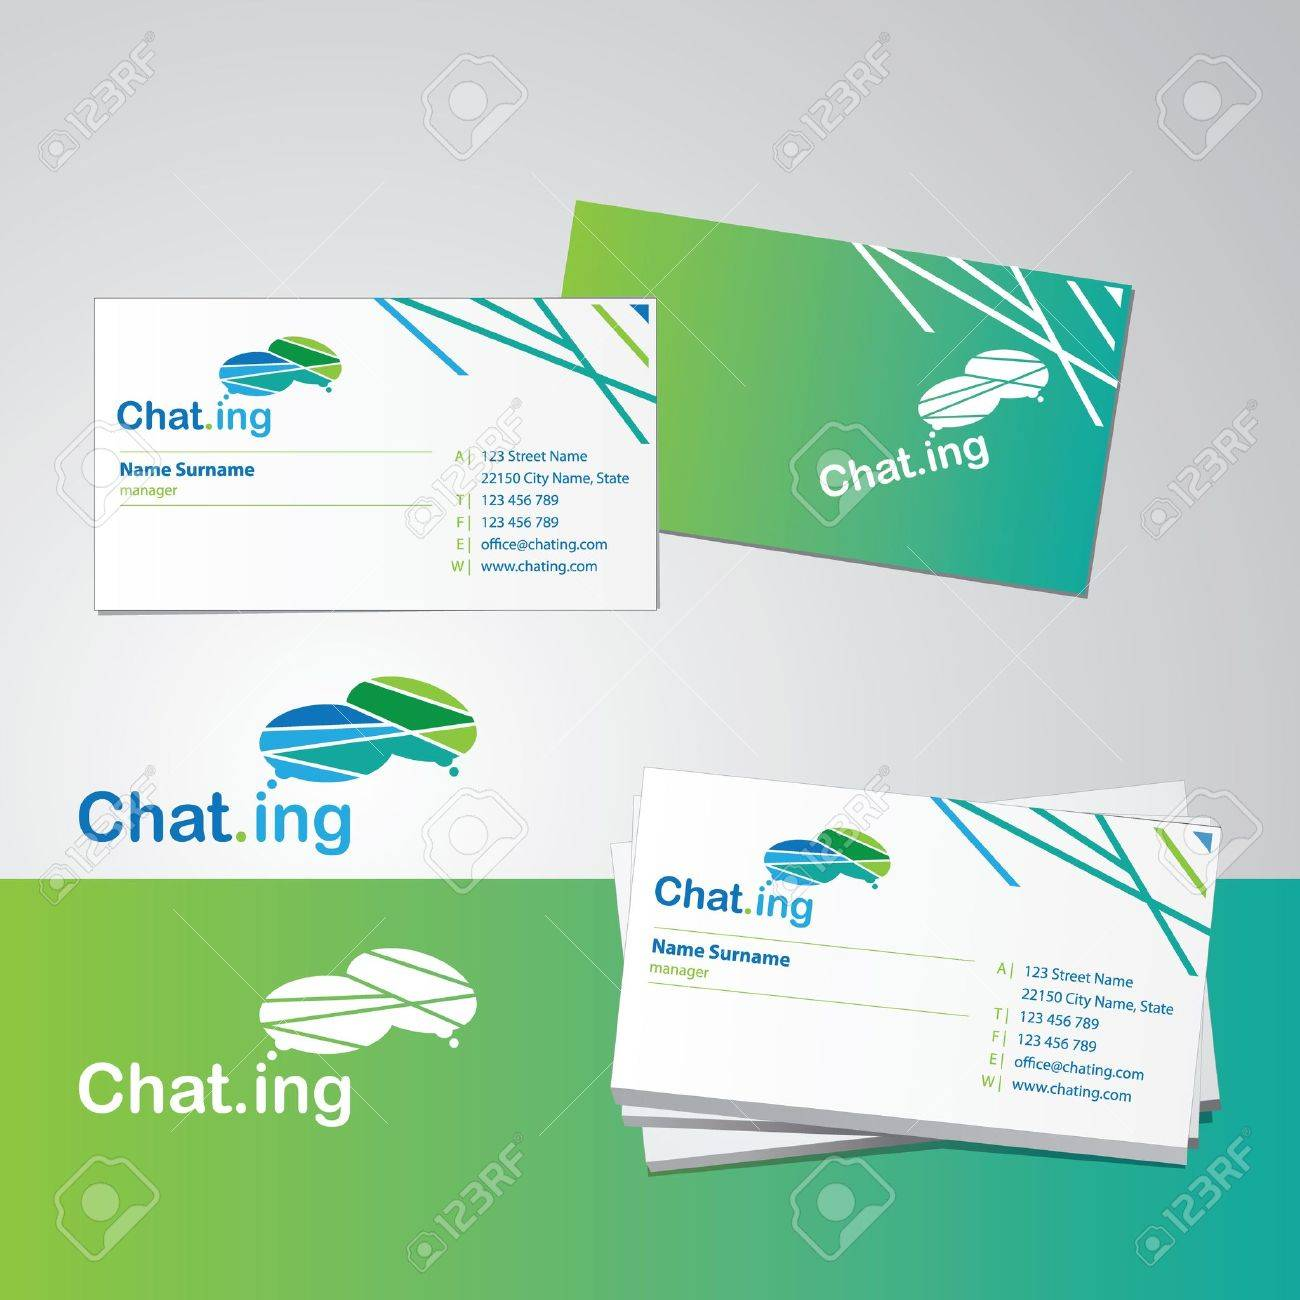 Business card design template royalty free cliparts vectors and business card design template stock vector 10399805 friedricerecipe Gallery